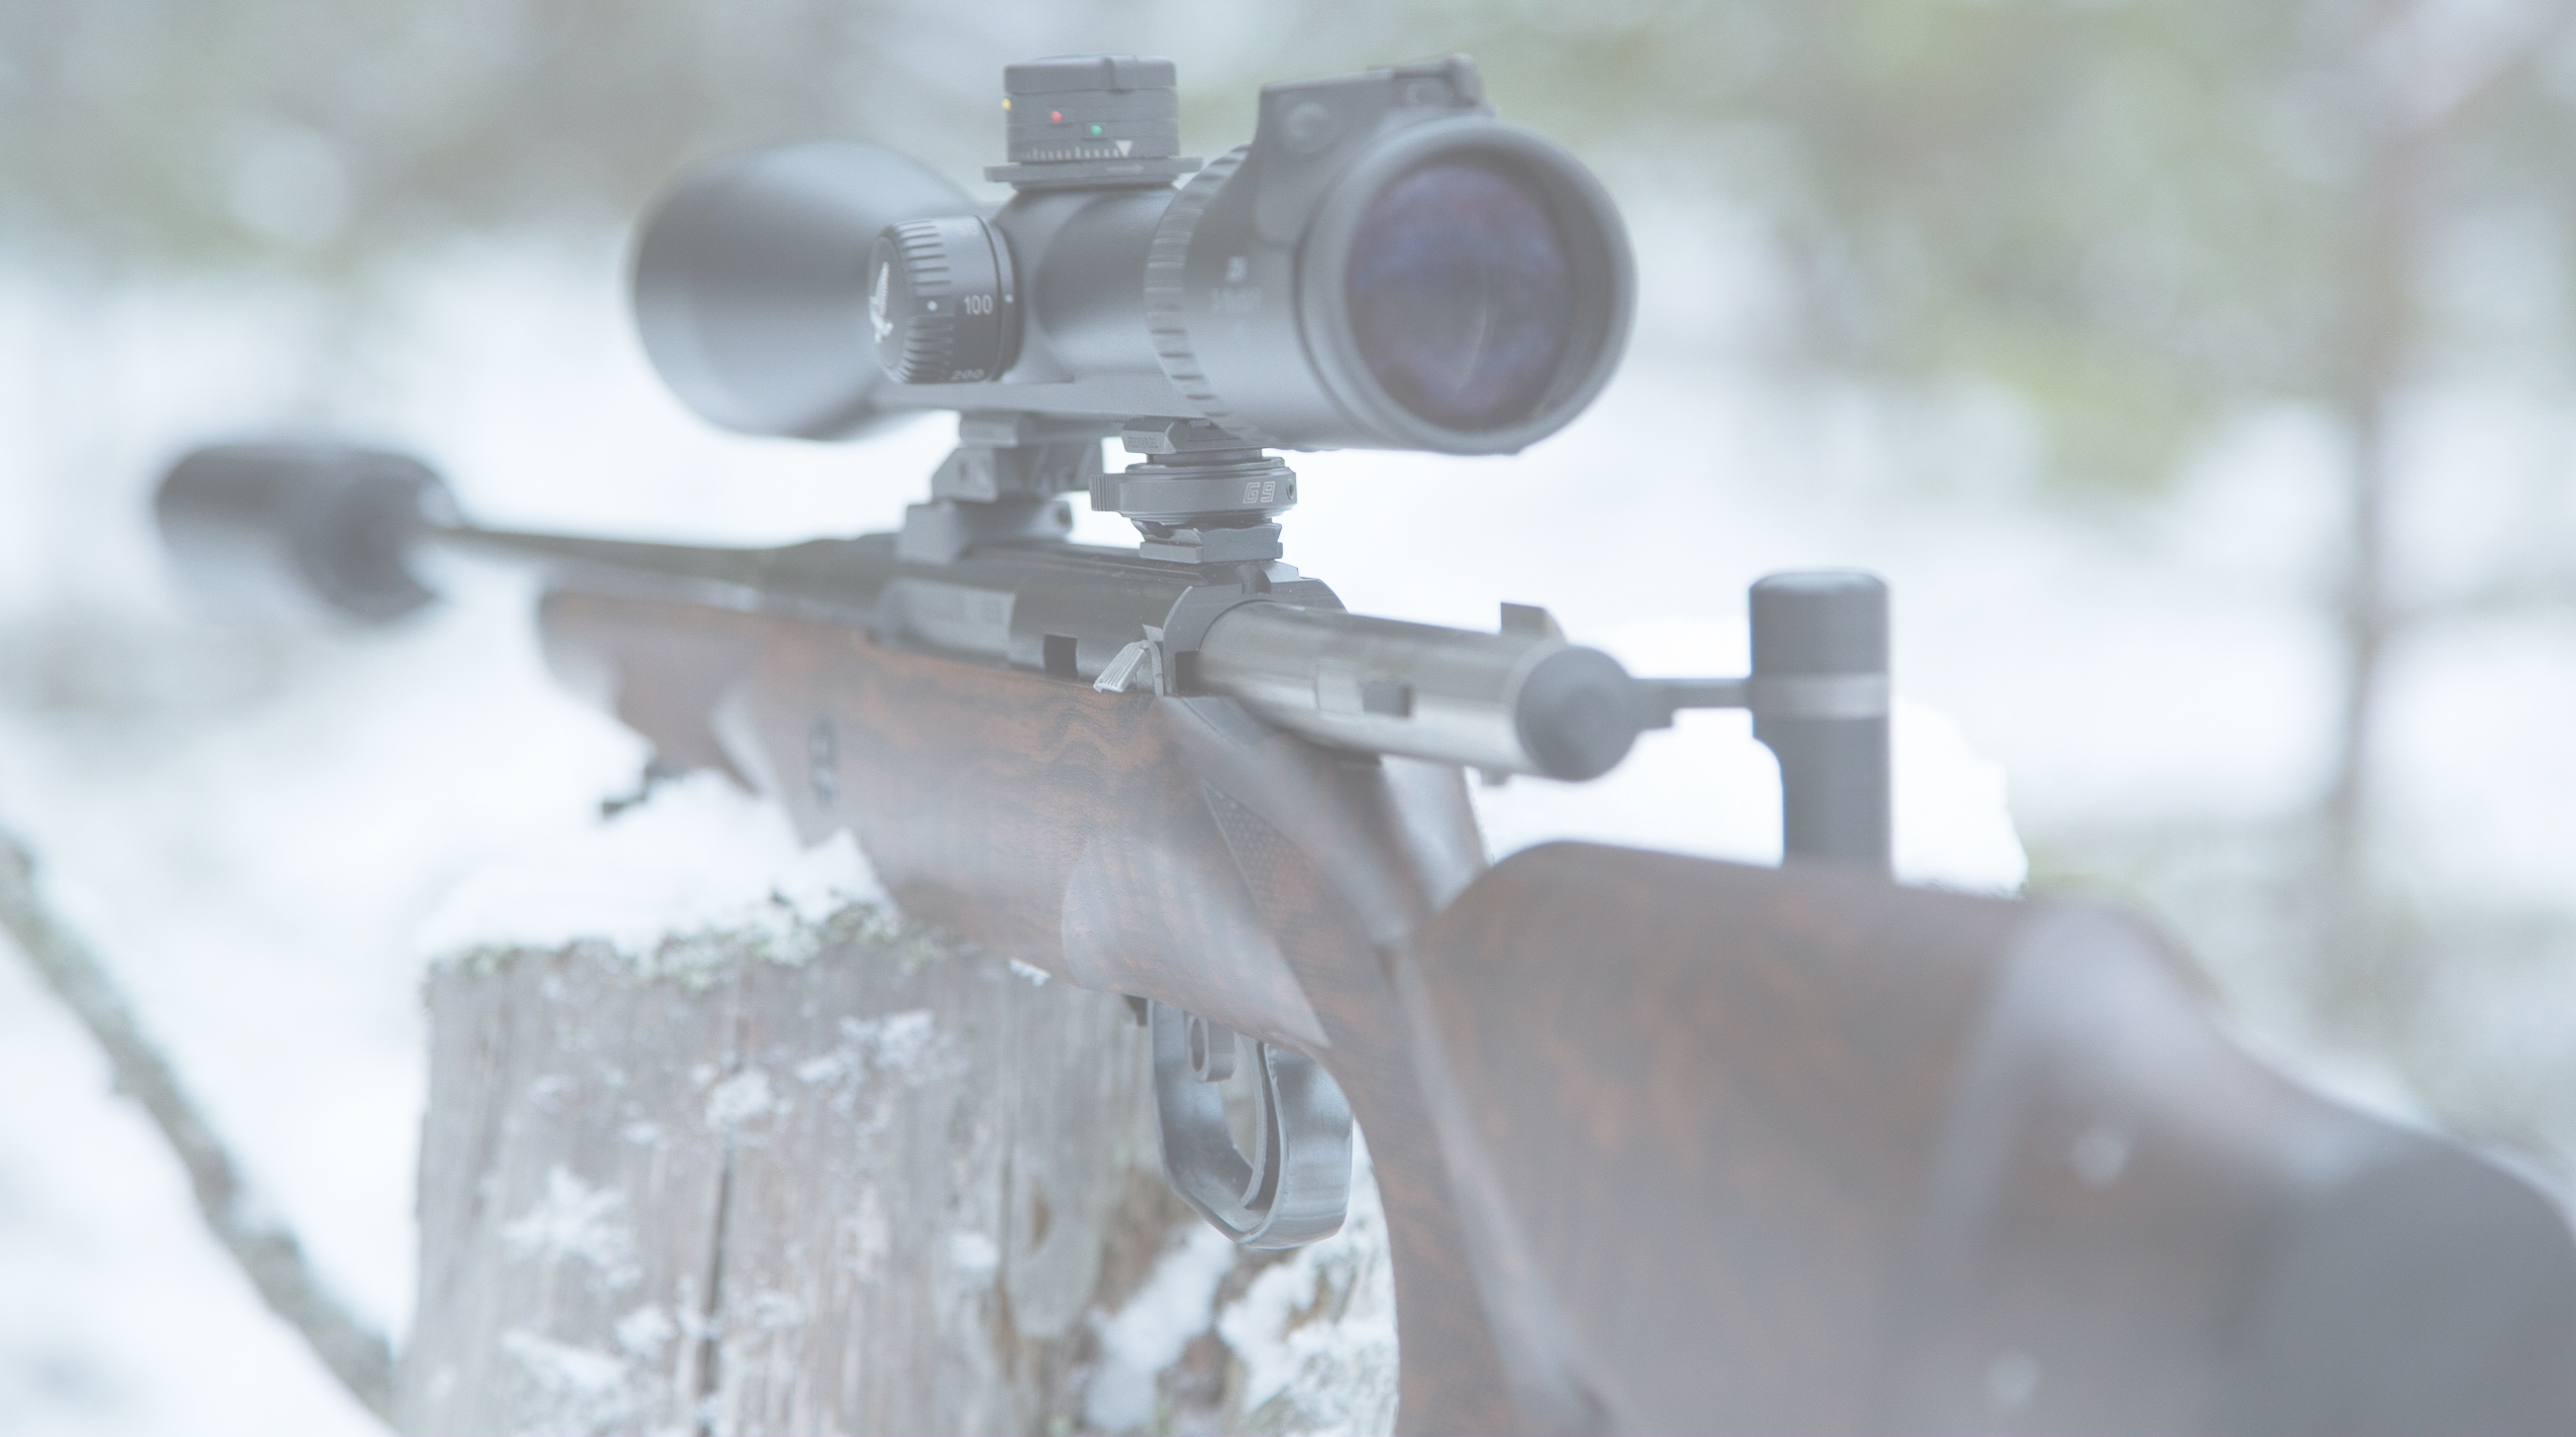 Welcome - to the website of Lynx Rifles.